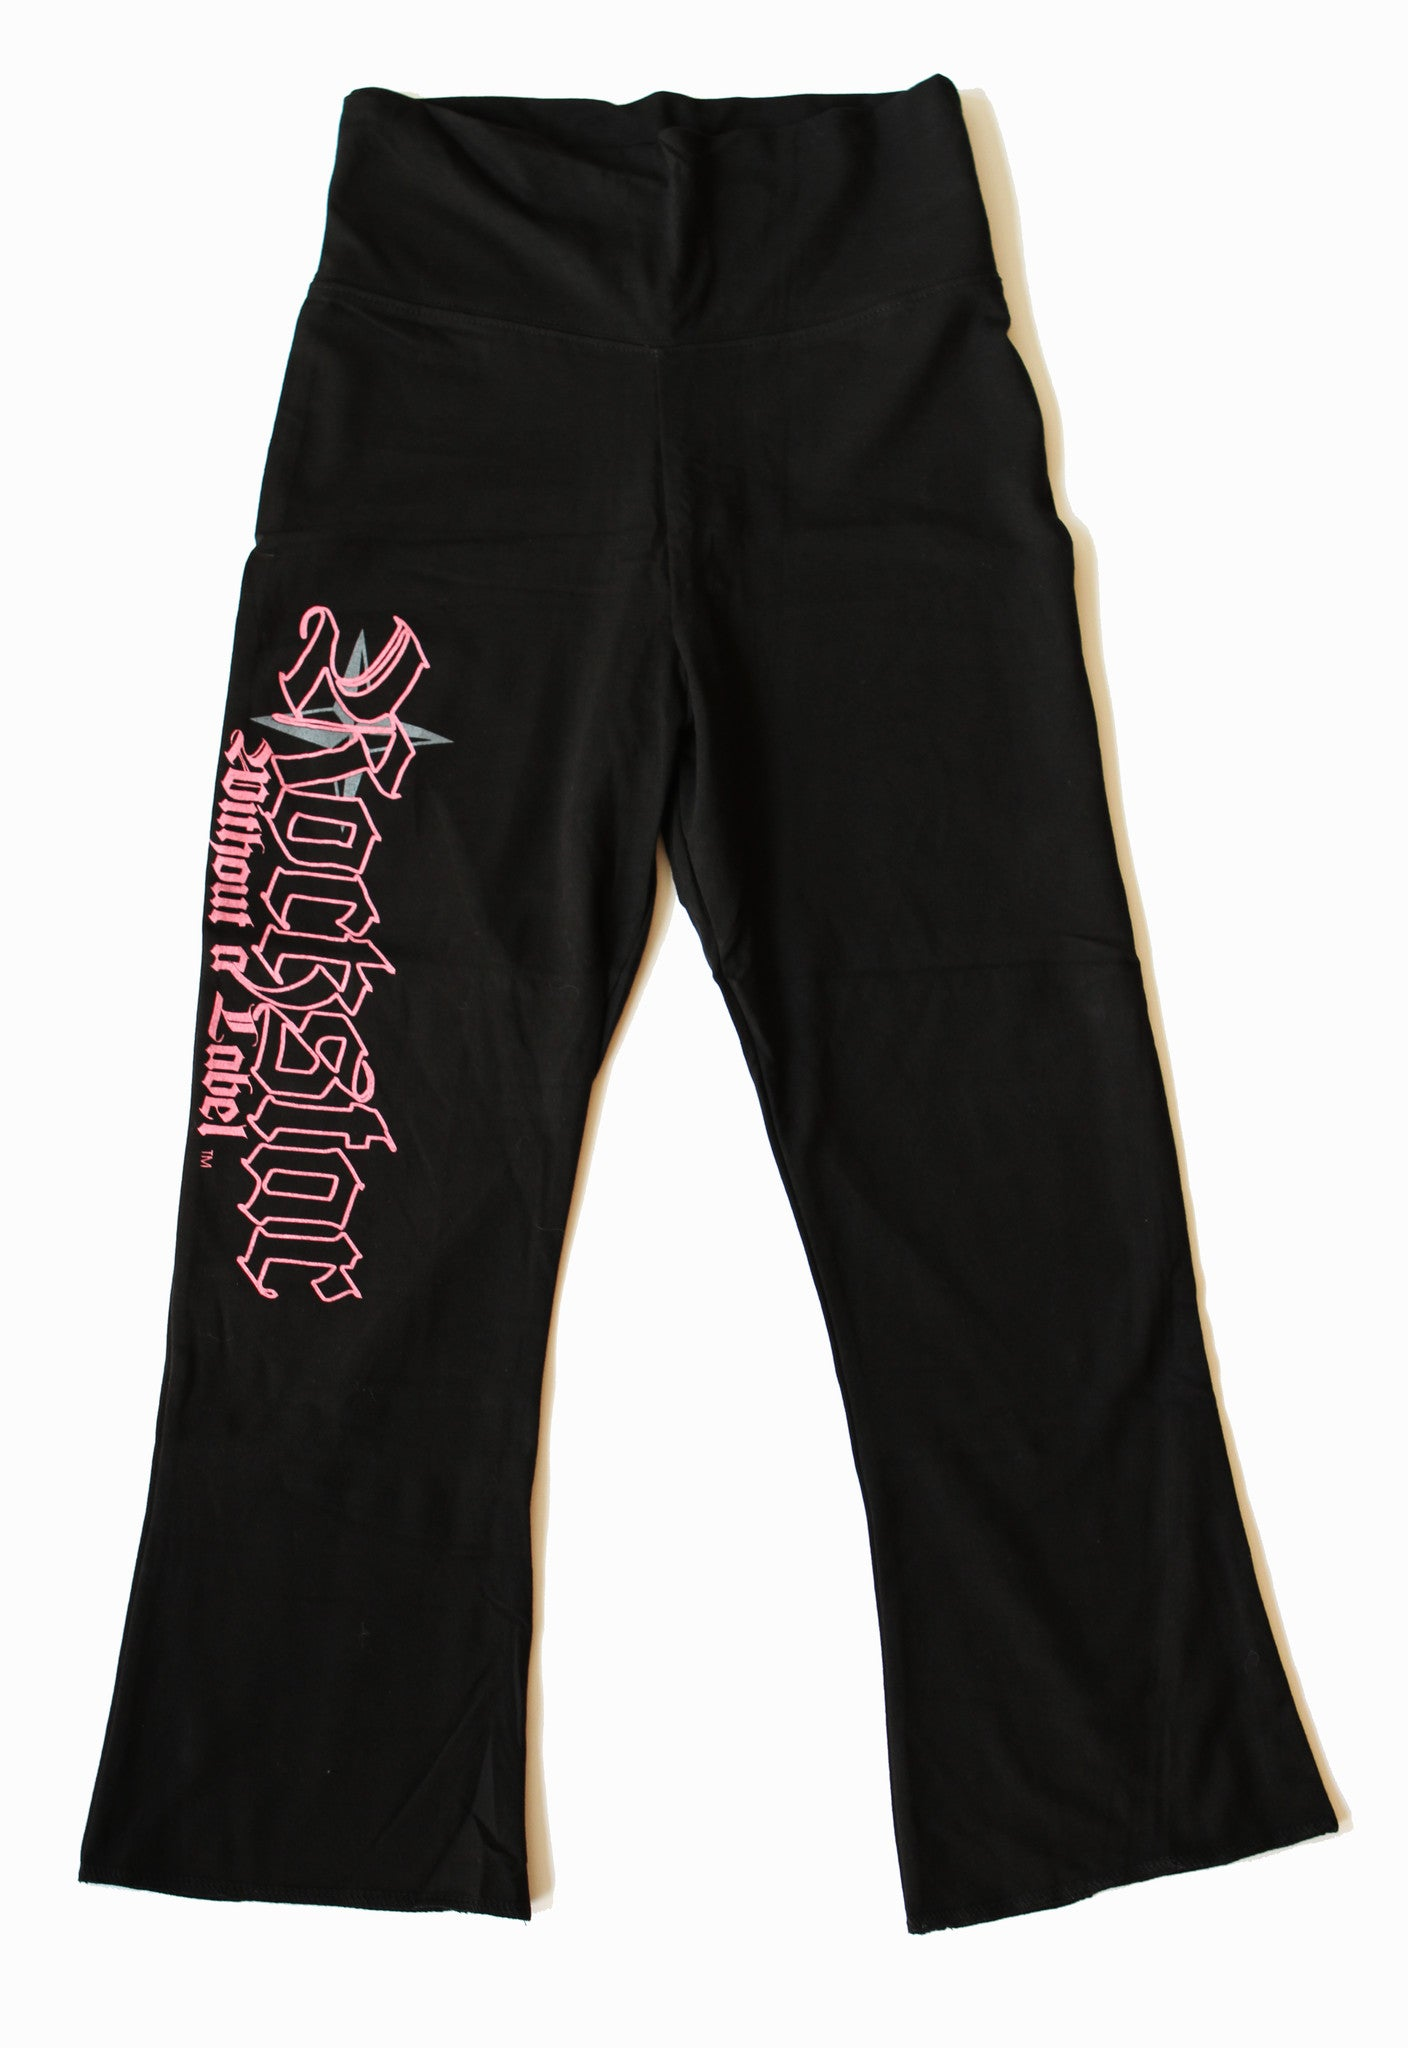 "Yoga/Capri Pant/Ankle Flair with  ""Rockstar logo"" on Leg in Pink."